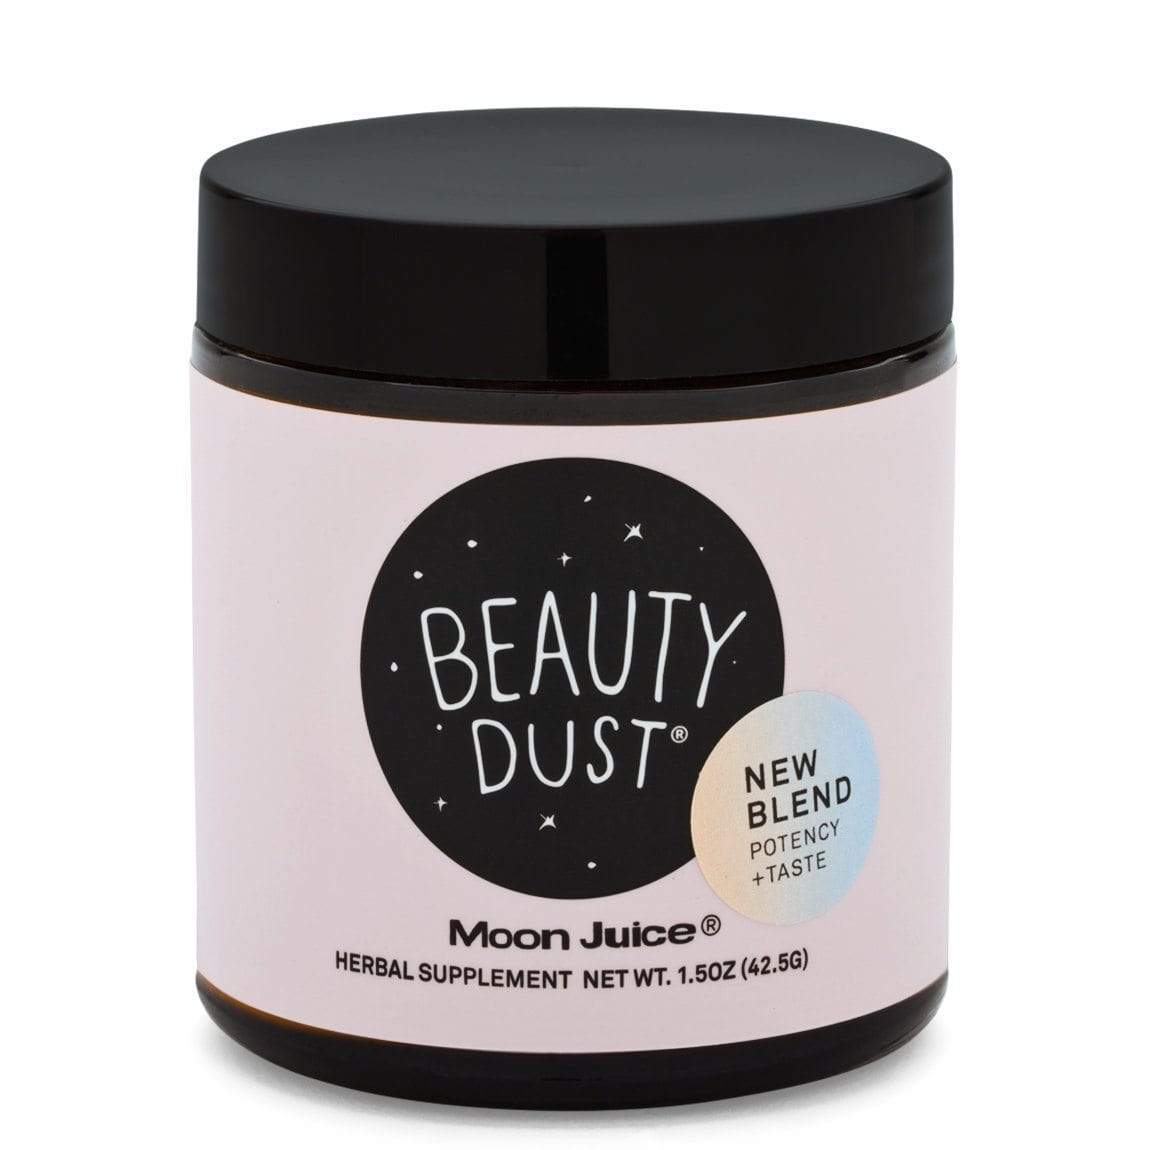 Moon Juice Supplements MOON JUICE Beauty Dust - new blend, 1.5oz